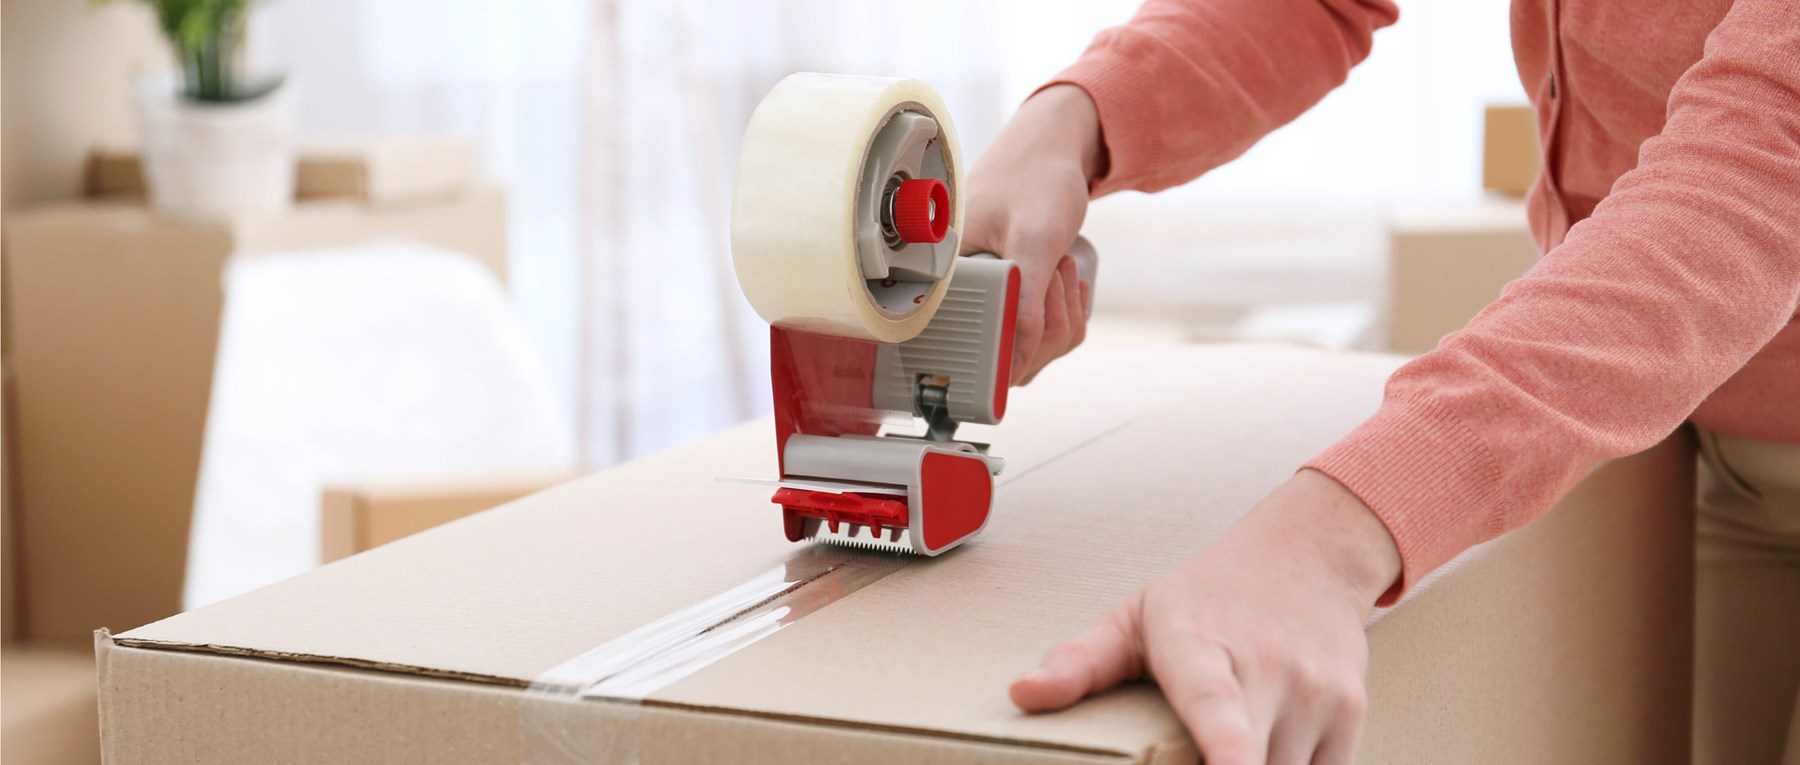 A box being taped up